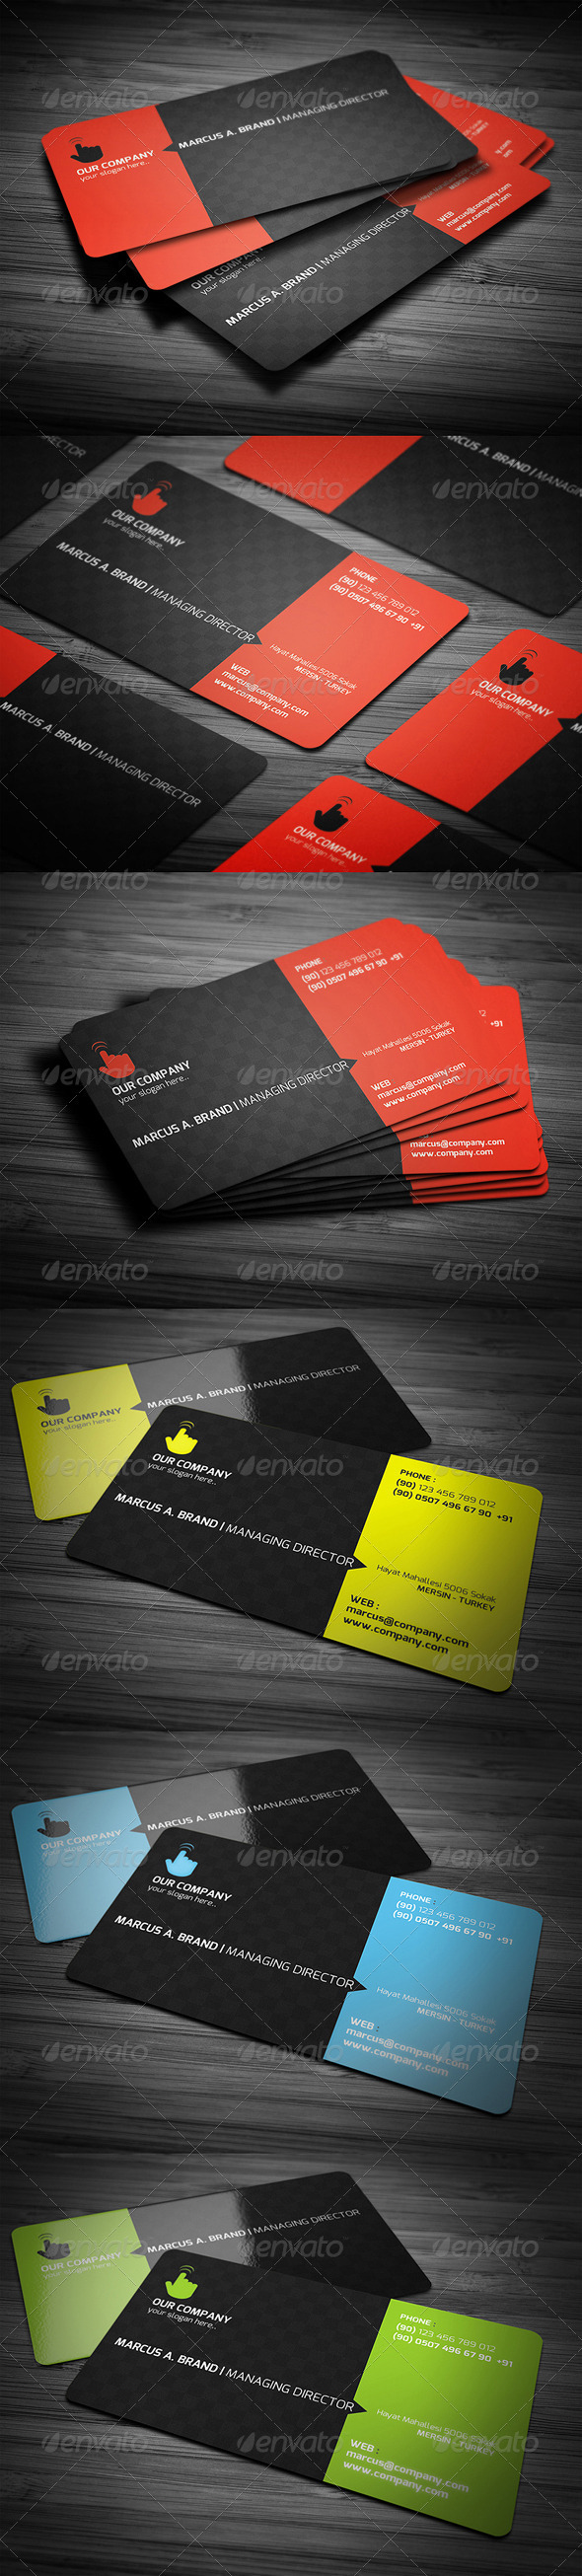 Rounded Corner Business Card by 89PixeL | GraphicRiver